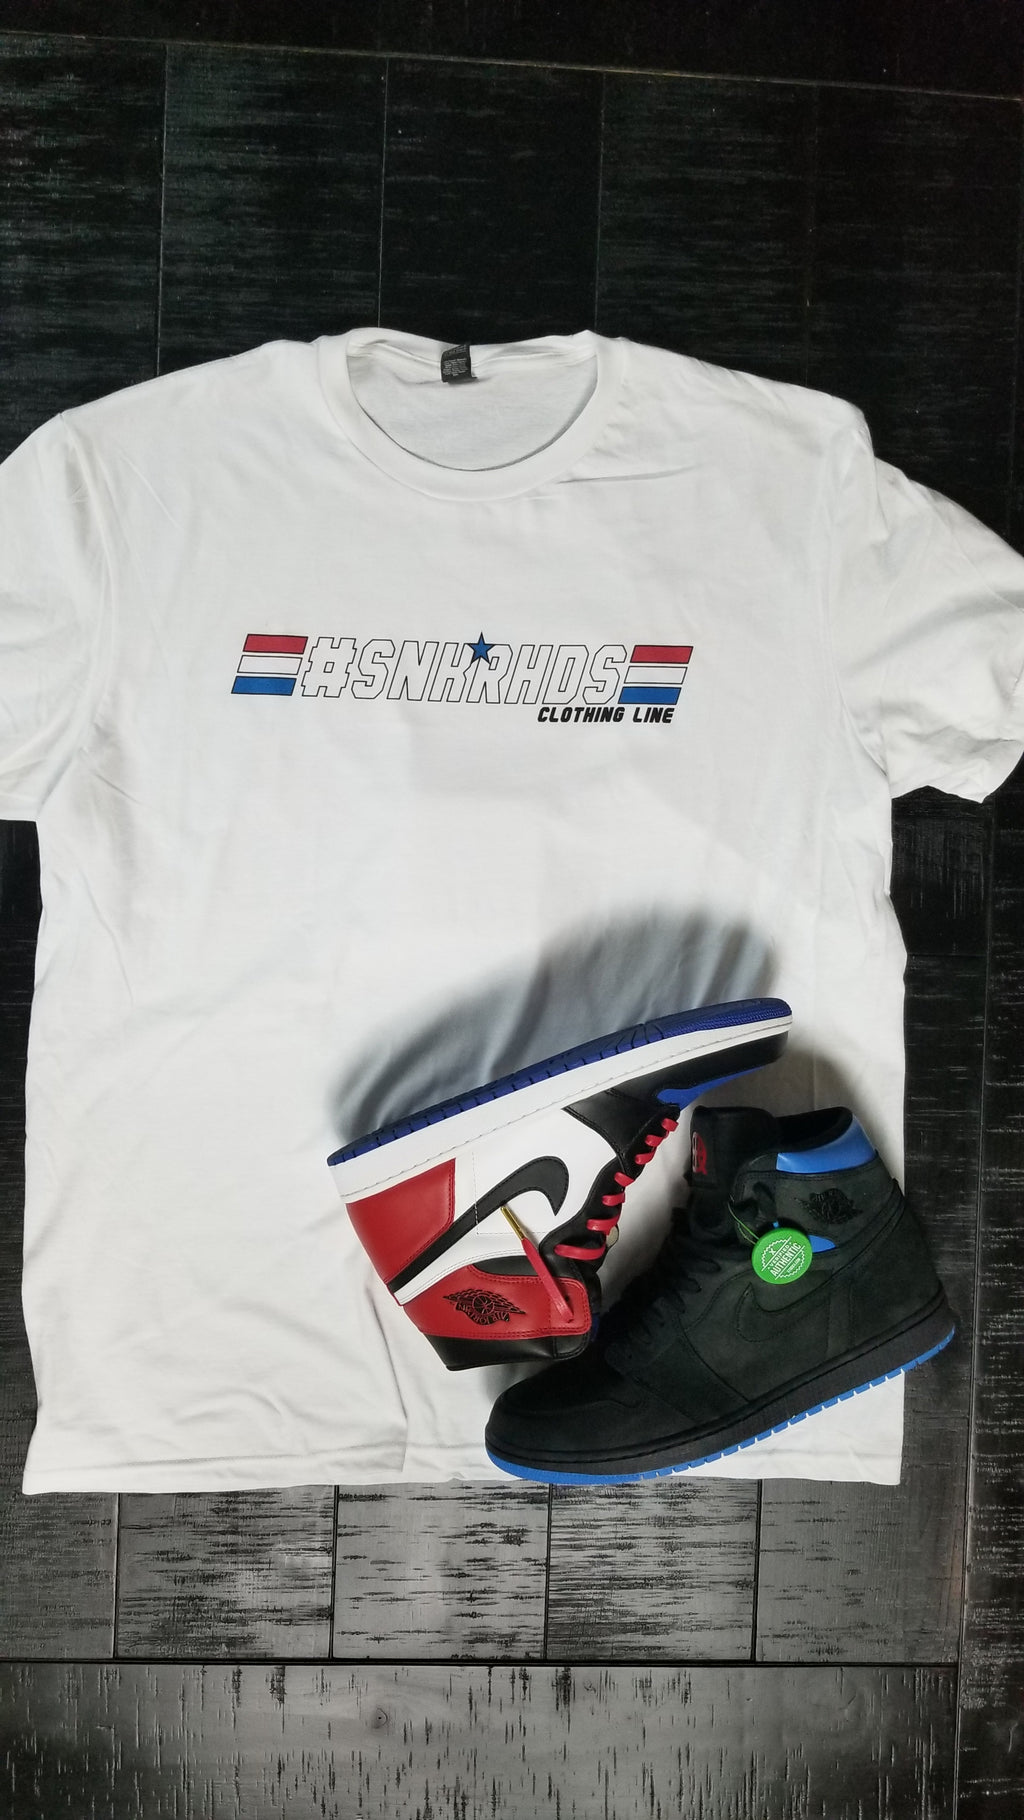 "#SNKRHDS ""GI JOE"" Tshirt - SNEAKERHEADS CLOTHING LINE"